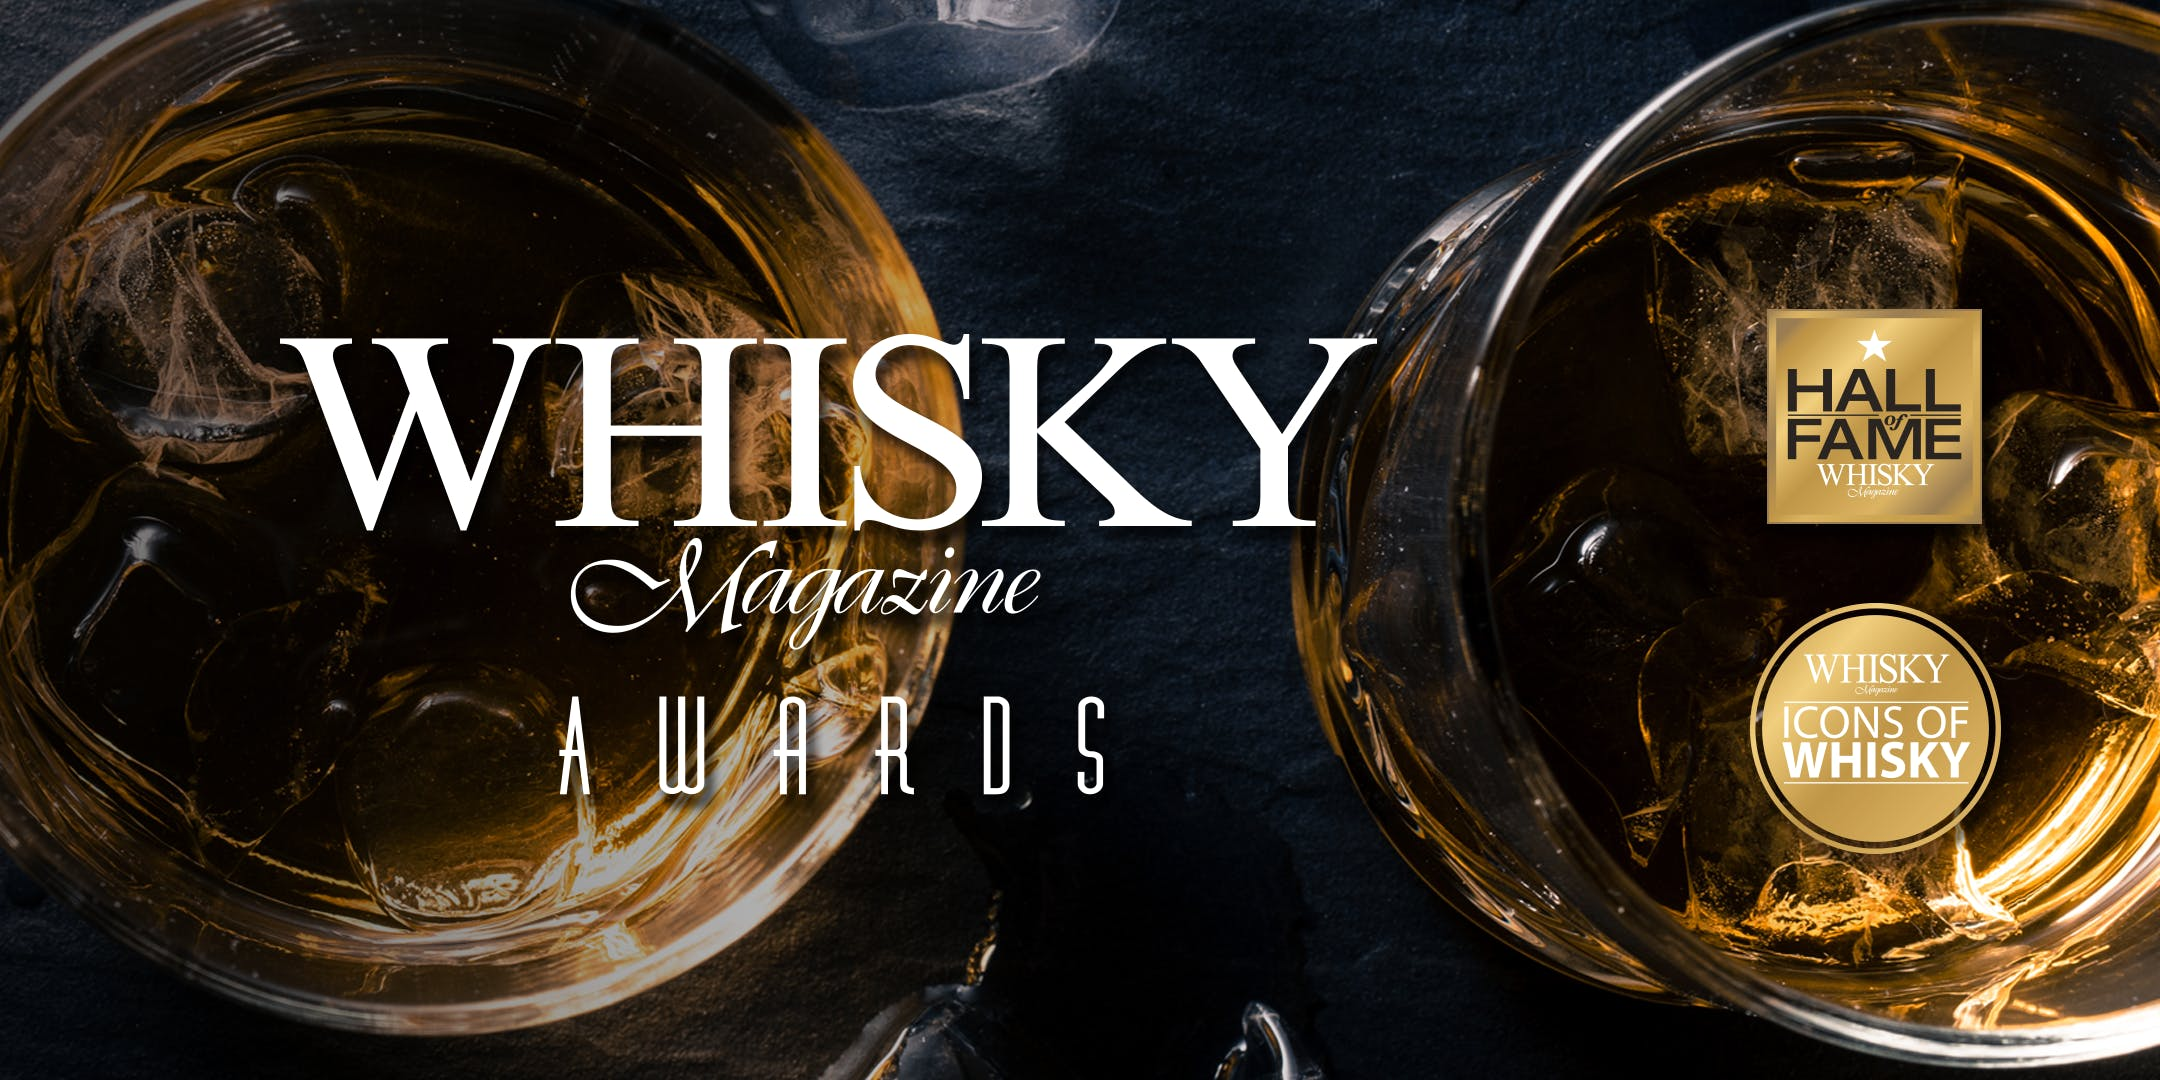 Whisky Magazine Awards Ireland 2019